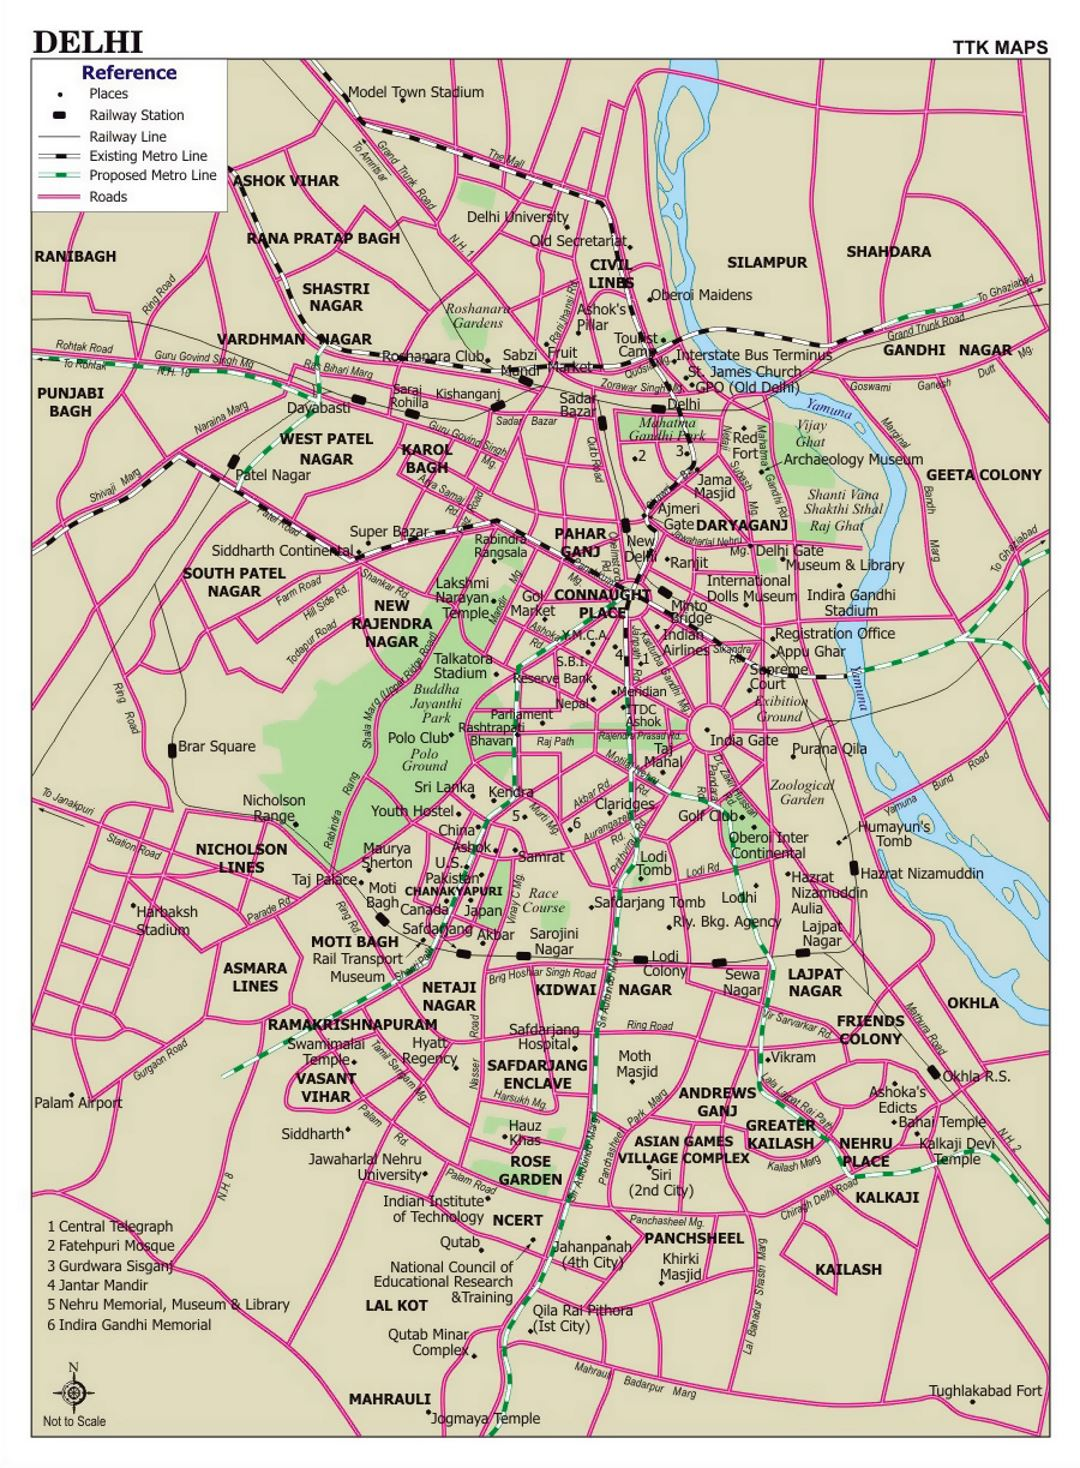 Detailed road map of Delhi city